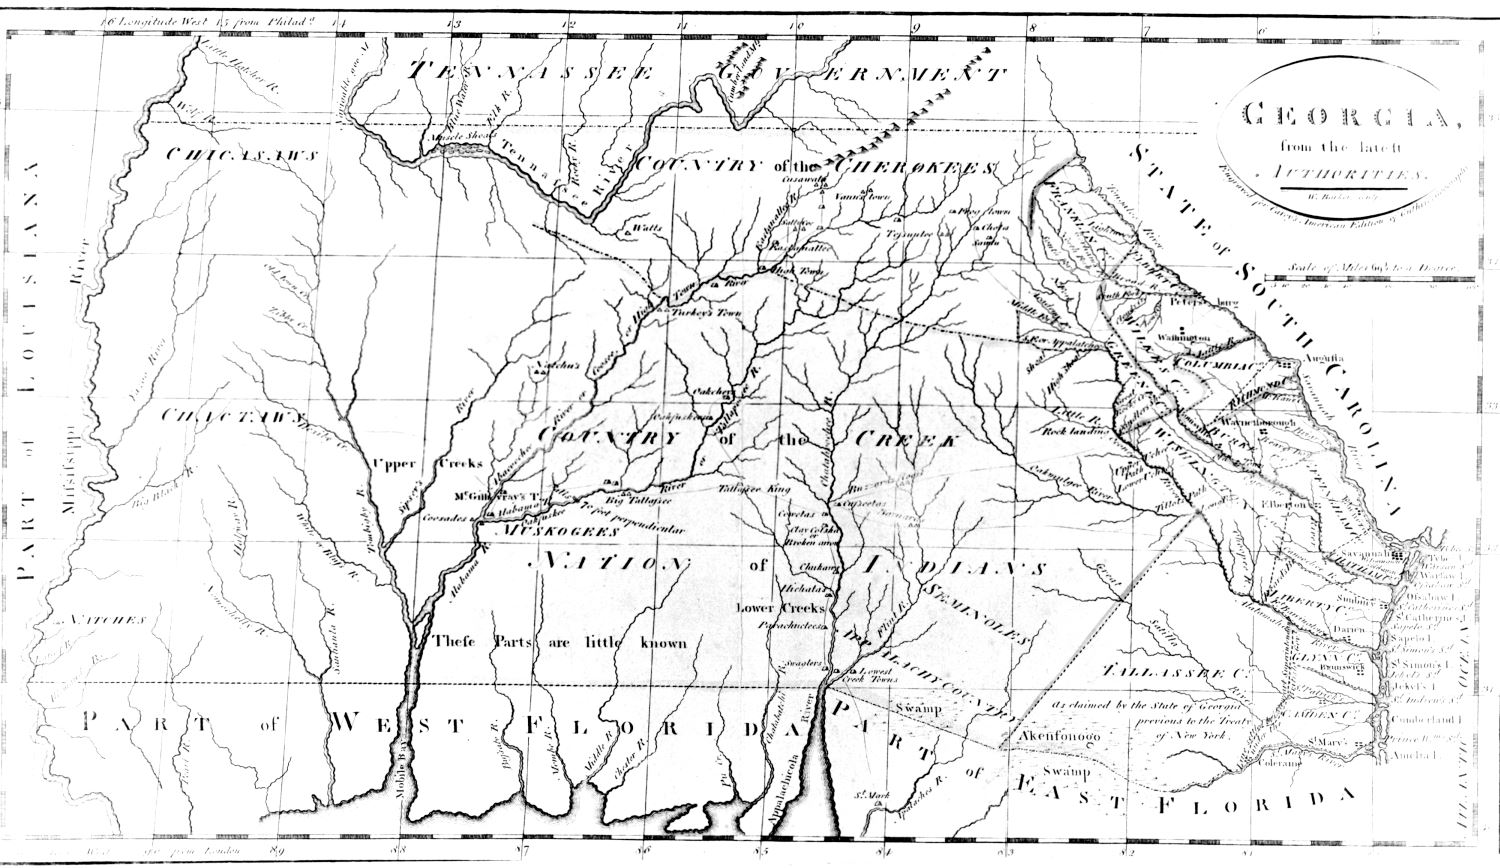 Georgia From the Latest Authorities, 1795. Georgia Historical Society Map Collection, MS 1361MP-063.